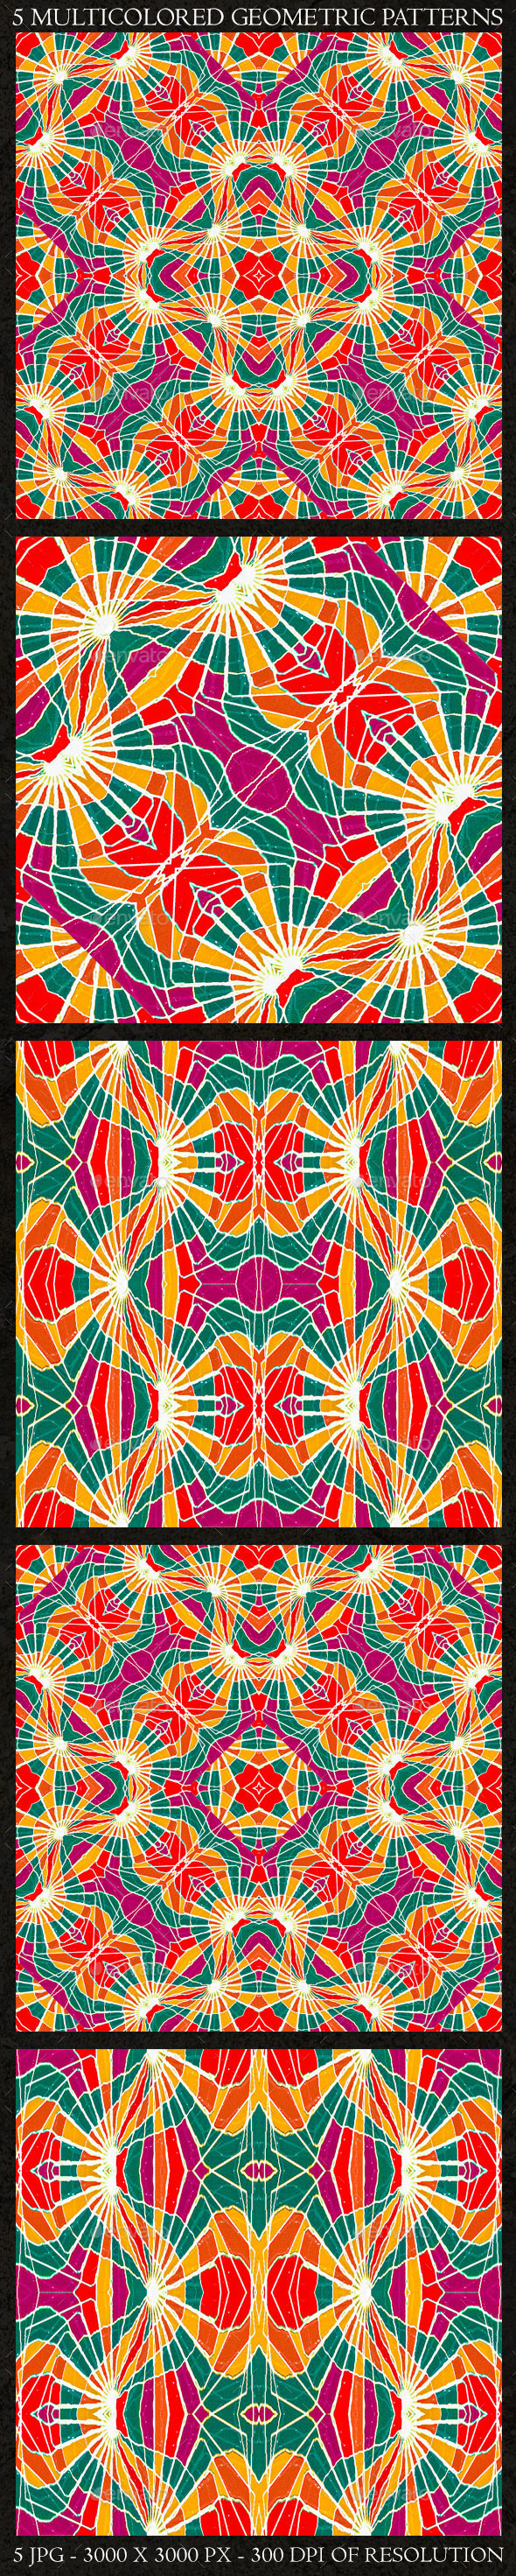 5 Multicolored Geometric Patterns